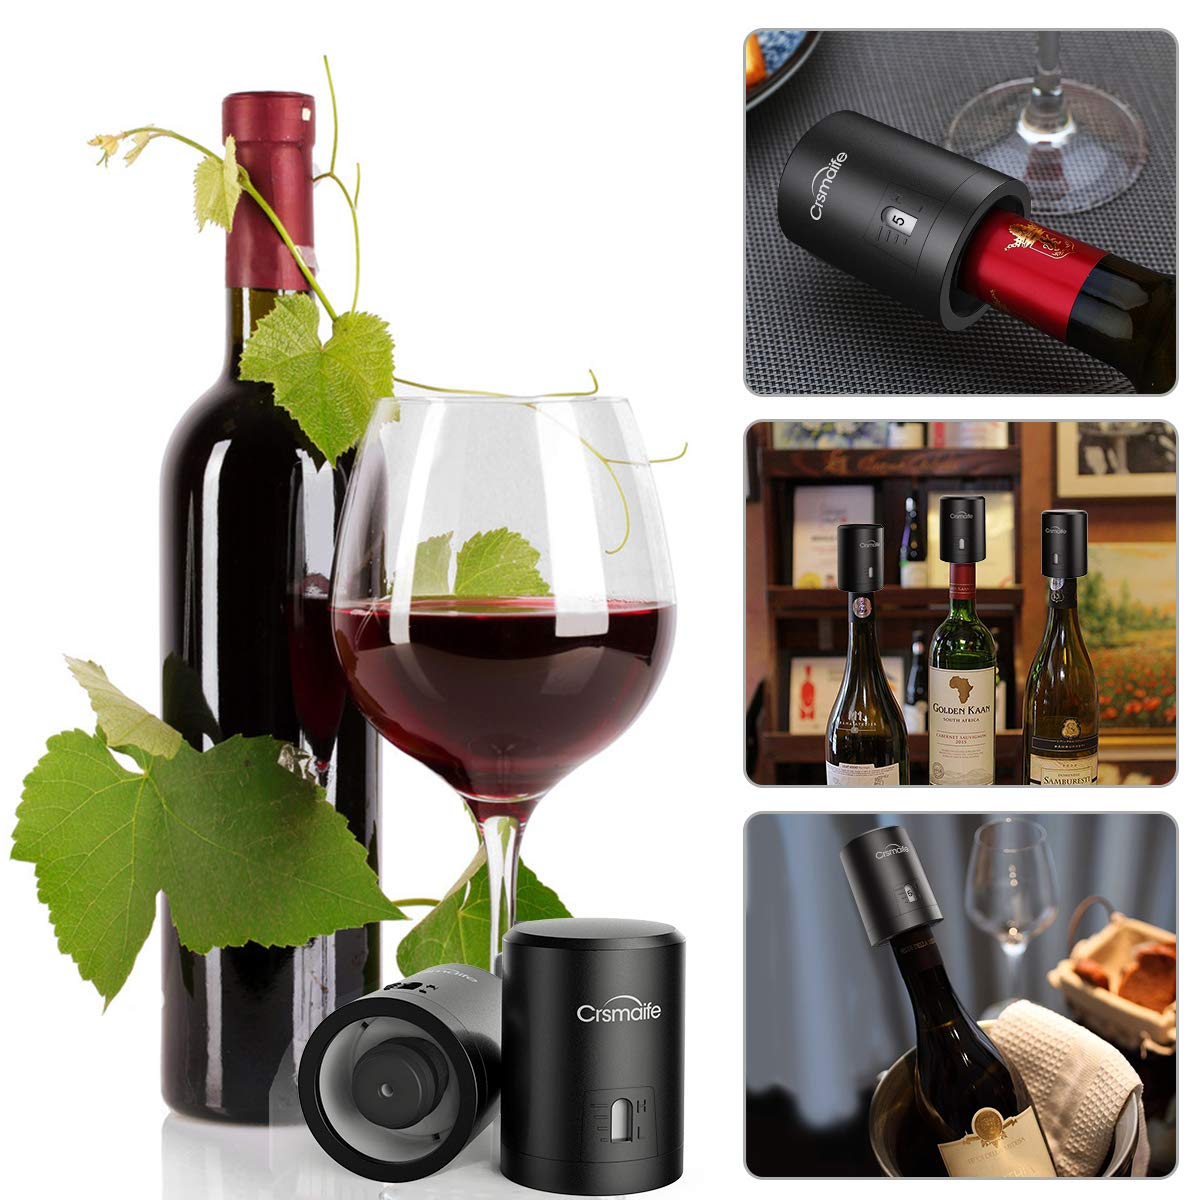 Crsmaife Wine Stopper Vacuum Wine Bottle Stopper Wine Saver Red Wine Pump Date Dial Airtight Display Silicone Valve PC Shell Durable for Wine Fresh 4.8 x 5.7 cm Black